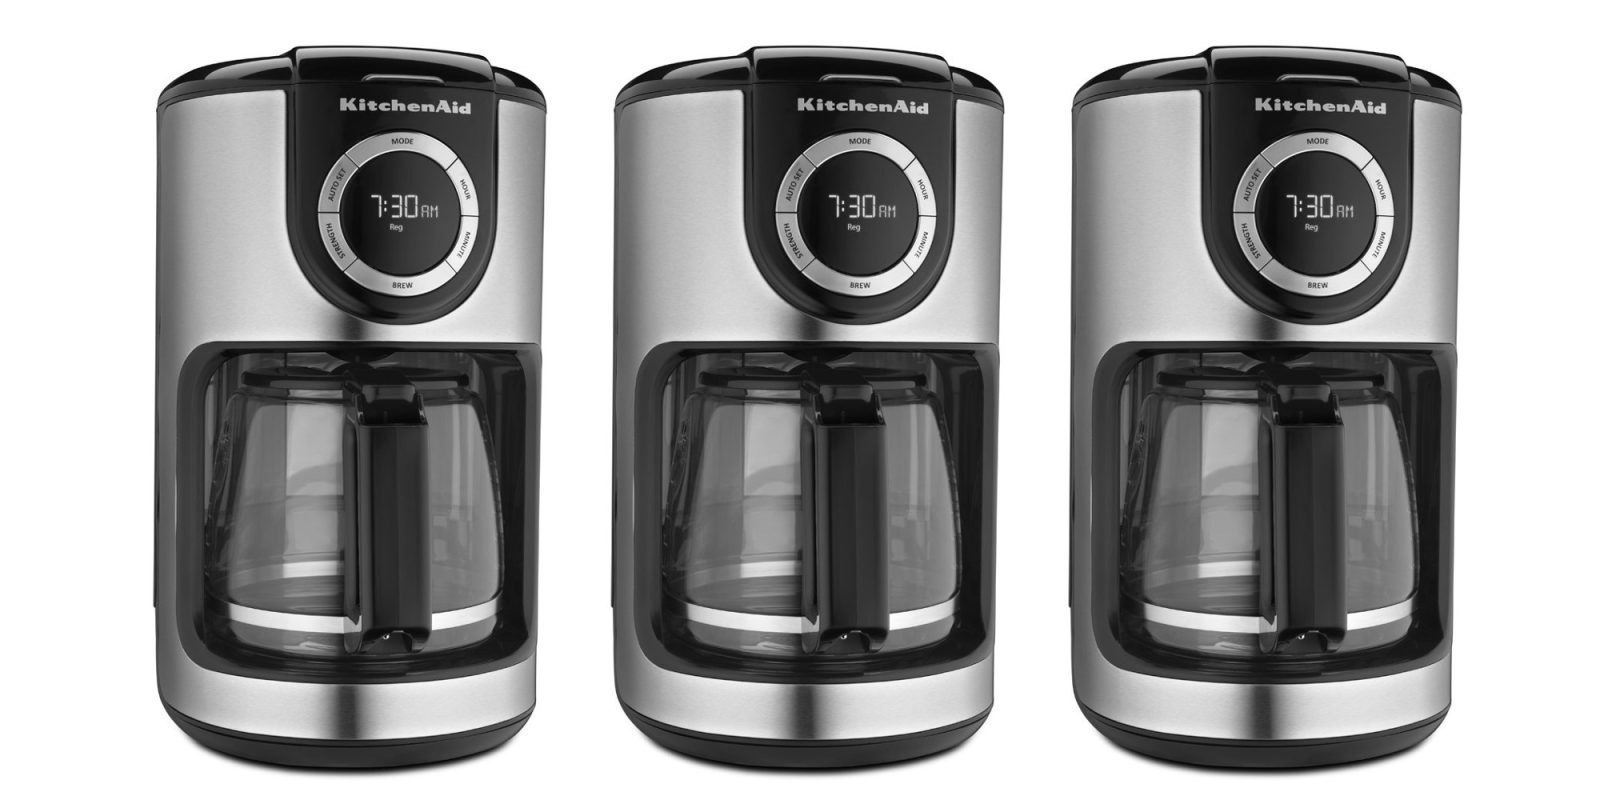 KitchenAid's 12-Cup Coffee Maker now under $40 at Amazon (Reg. up to $90)